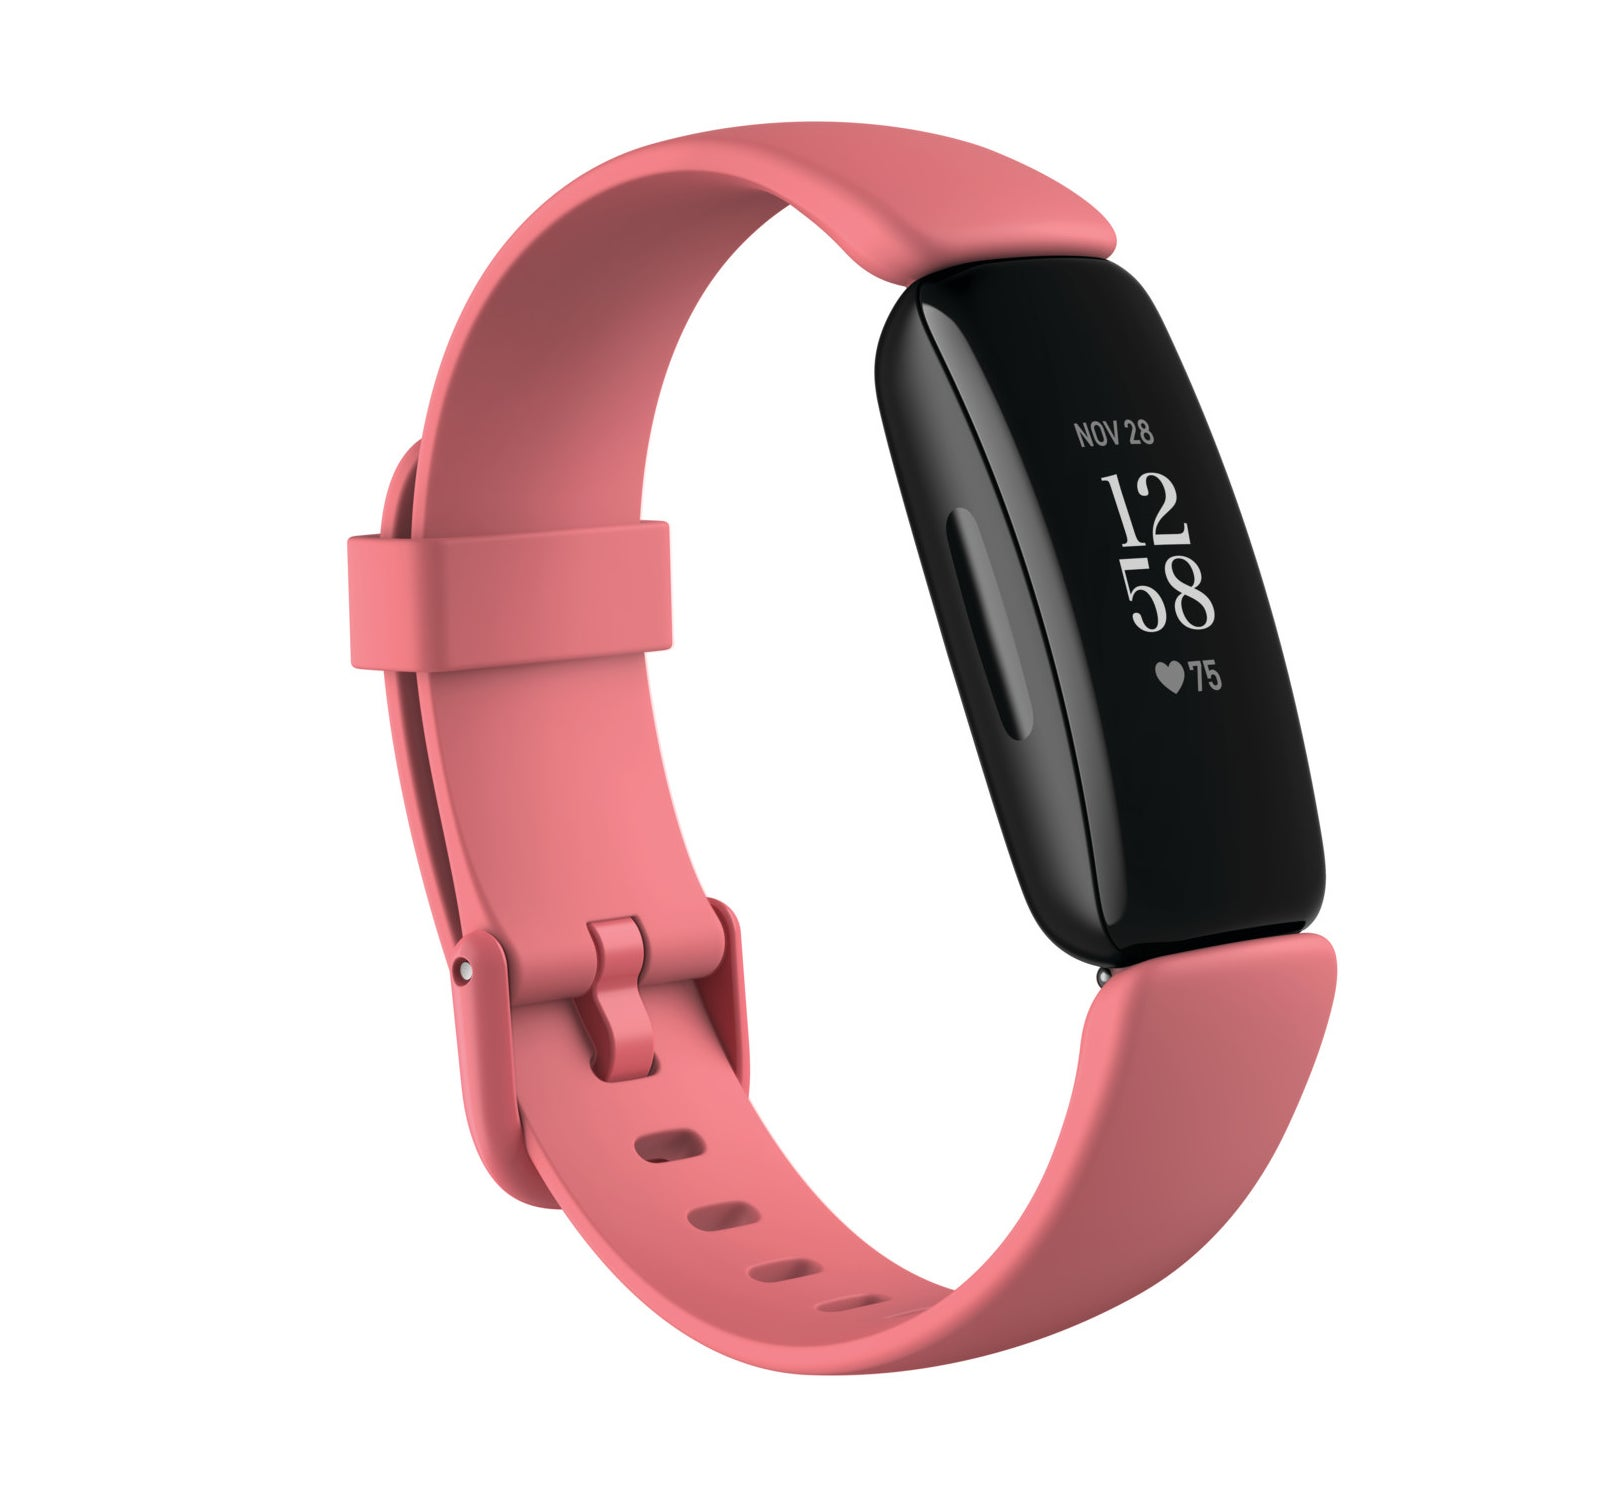 black fitbit fitness tracker with a pink band